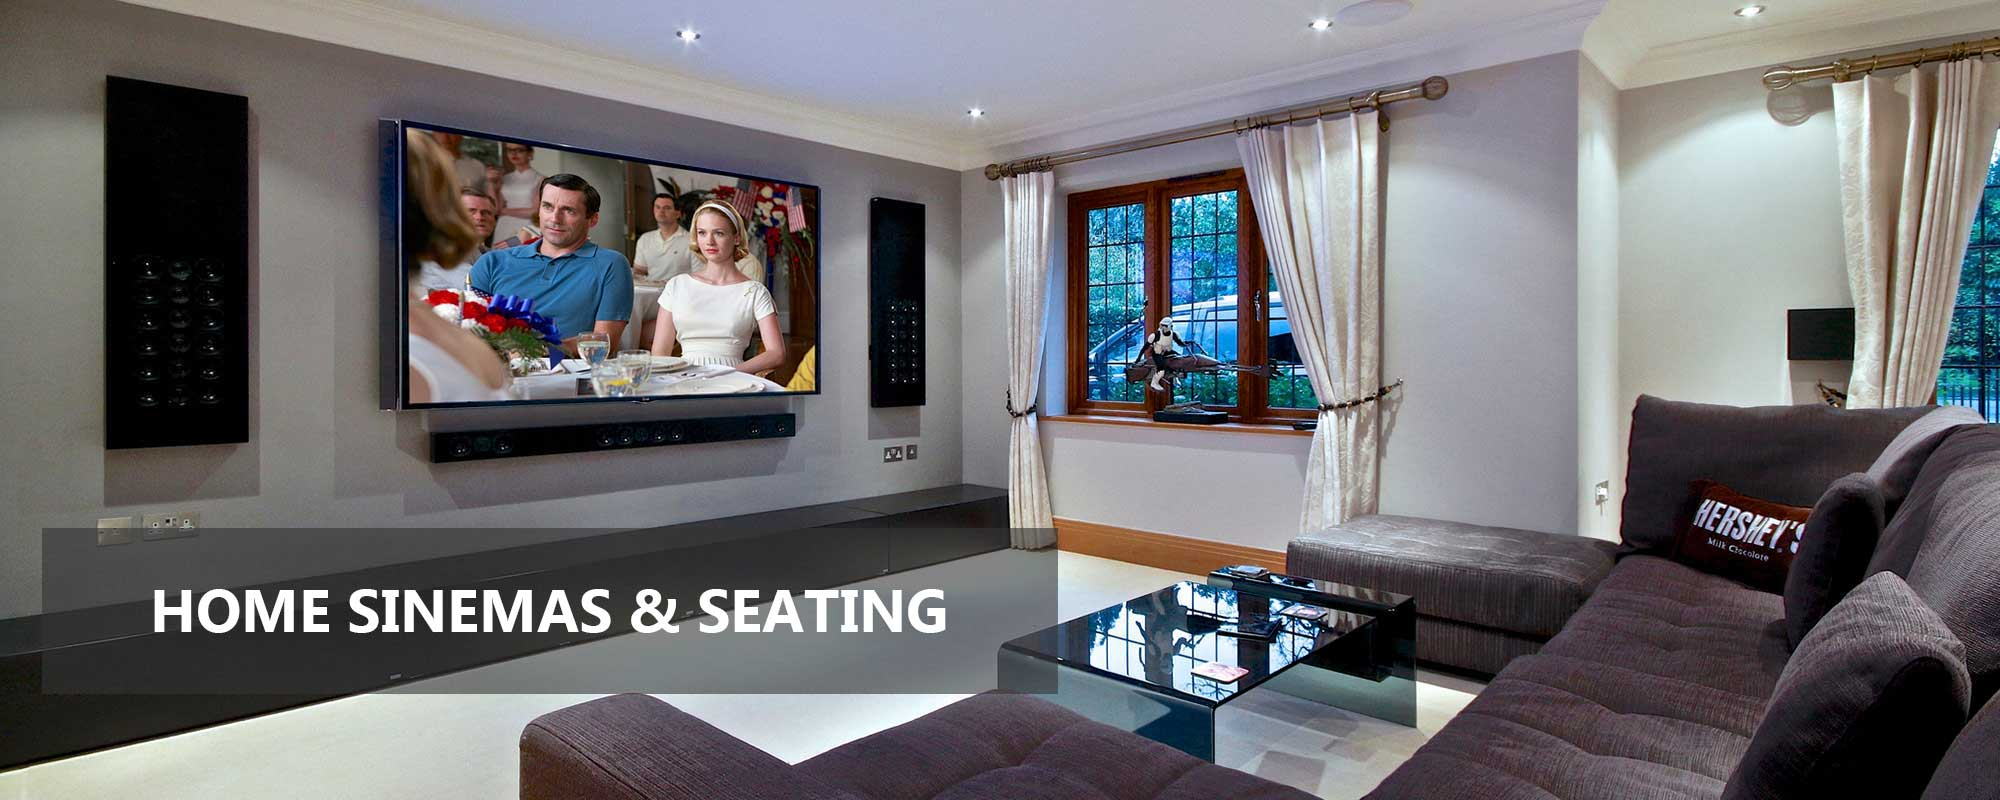 home cinemas and seating